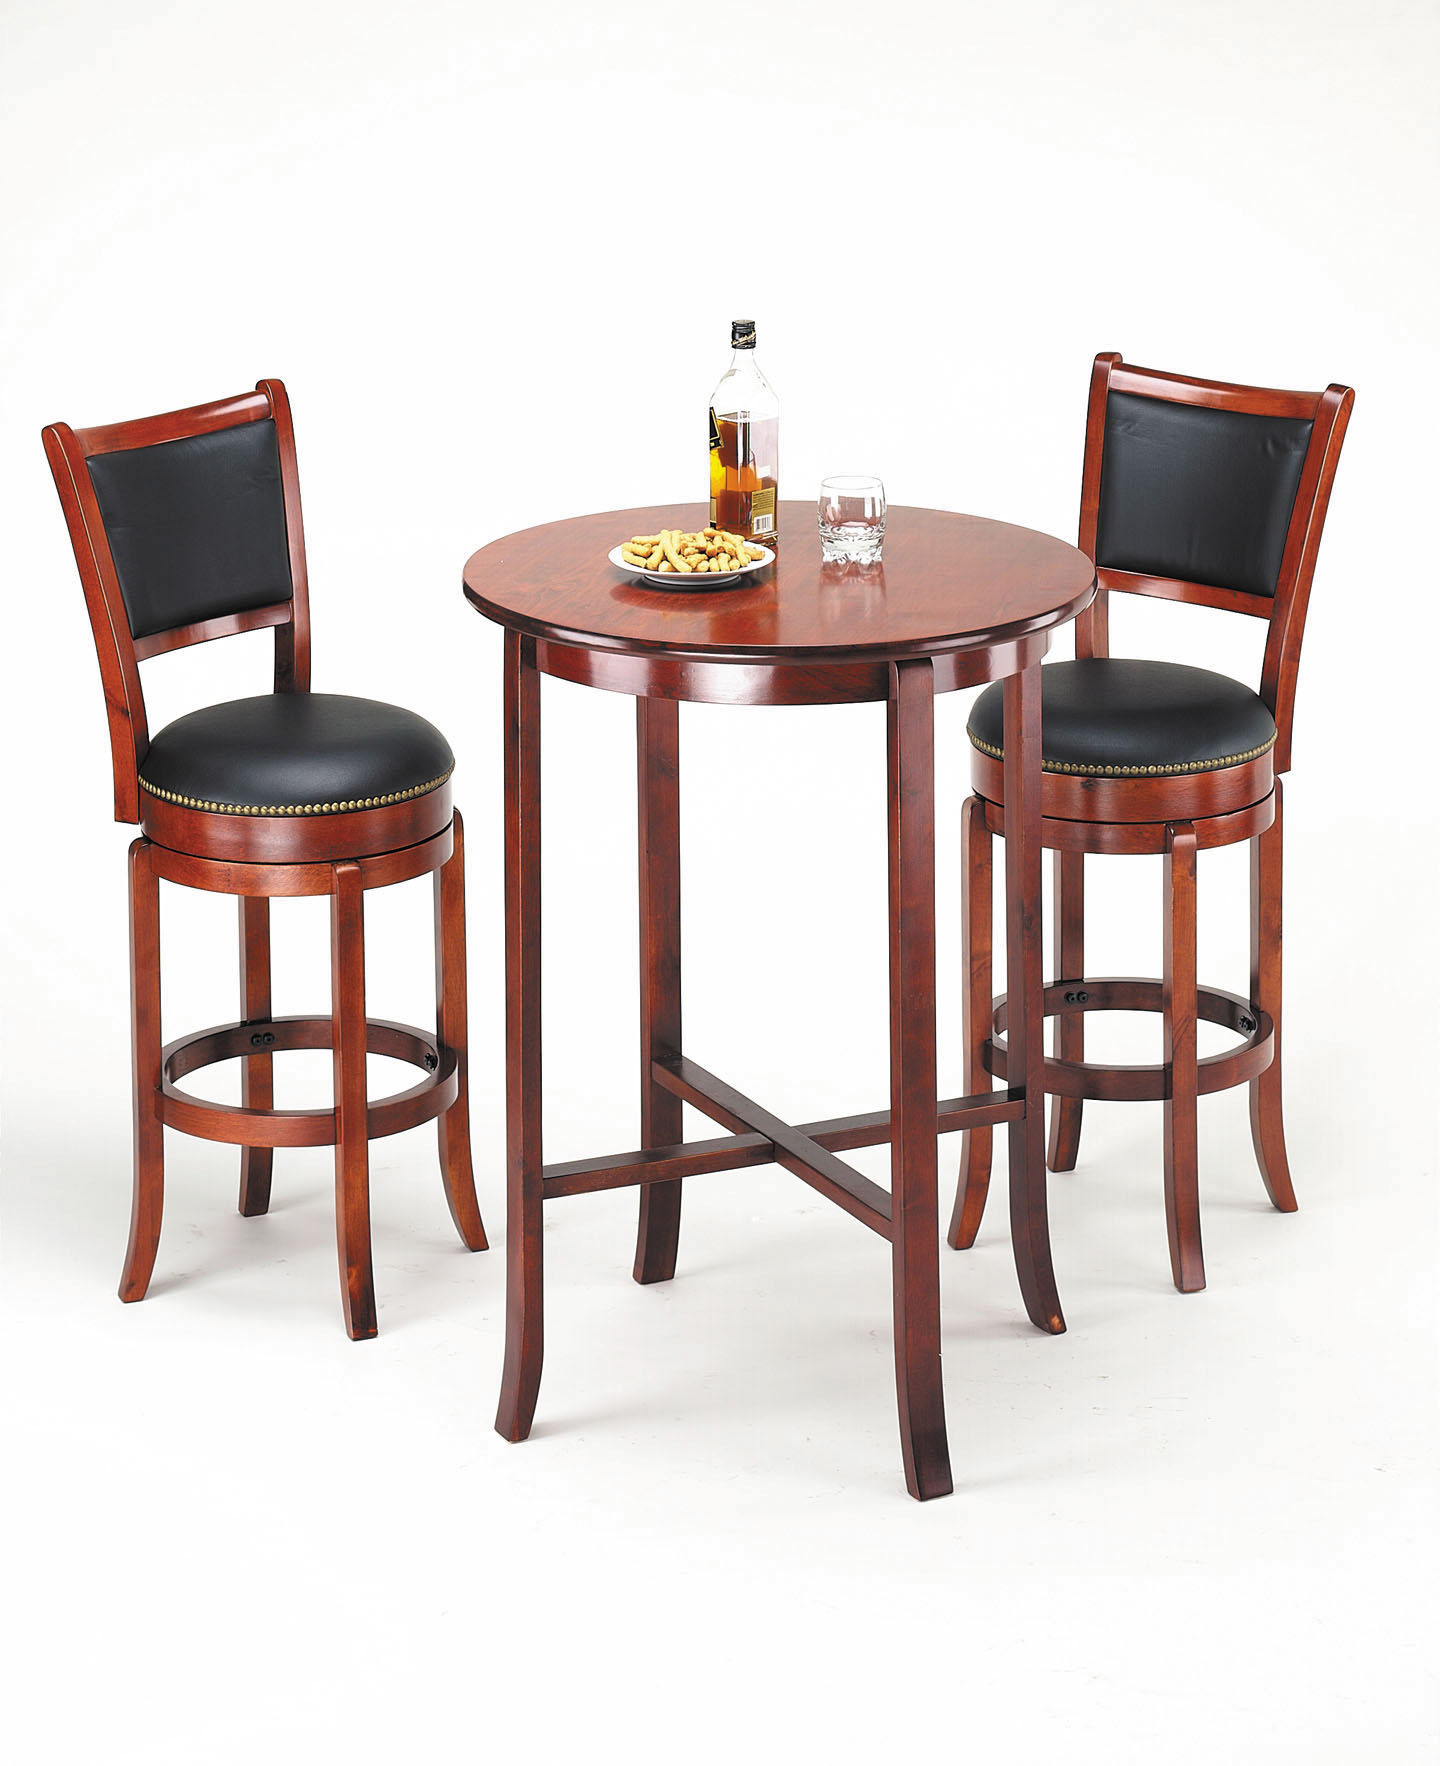 Bar tables bar stools unique furniture shopping for kitchen or bar stools watchthetrailerfo